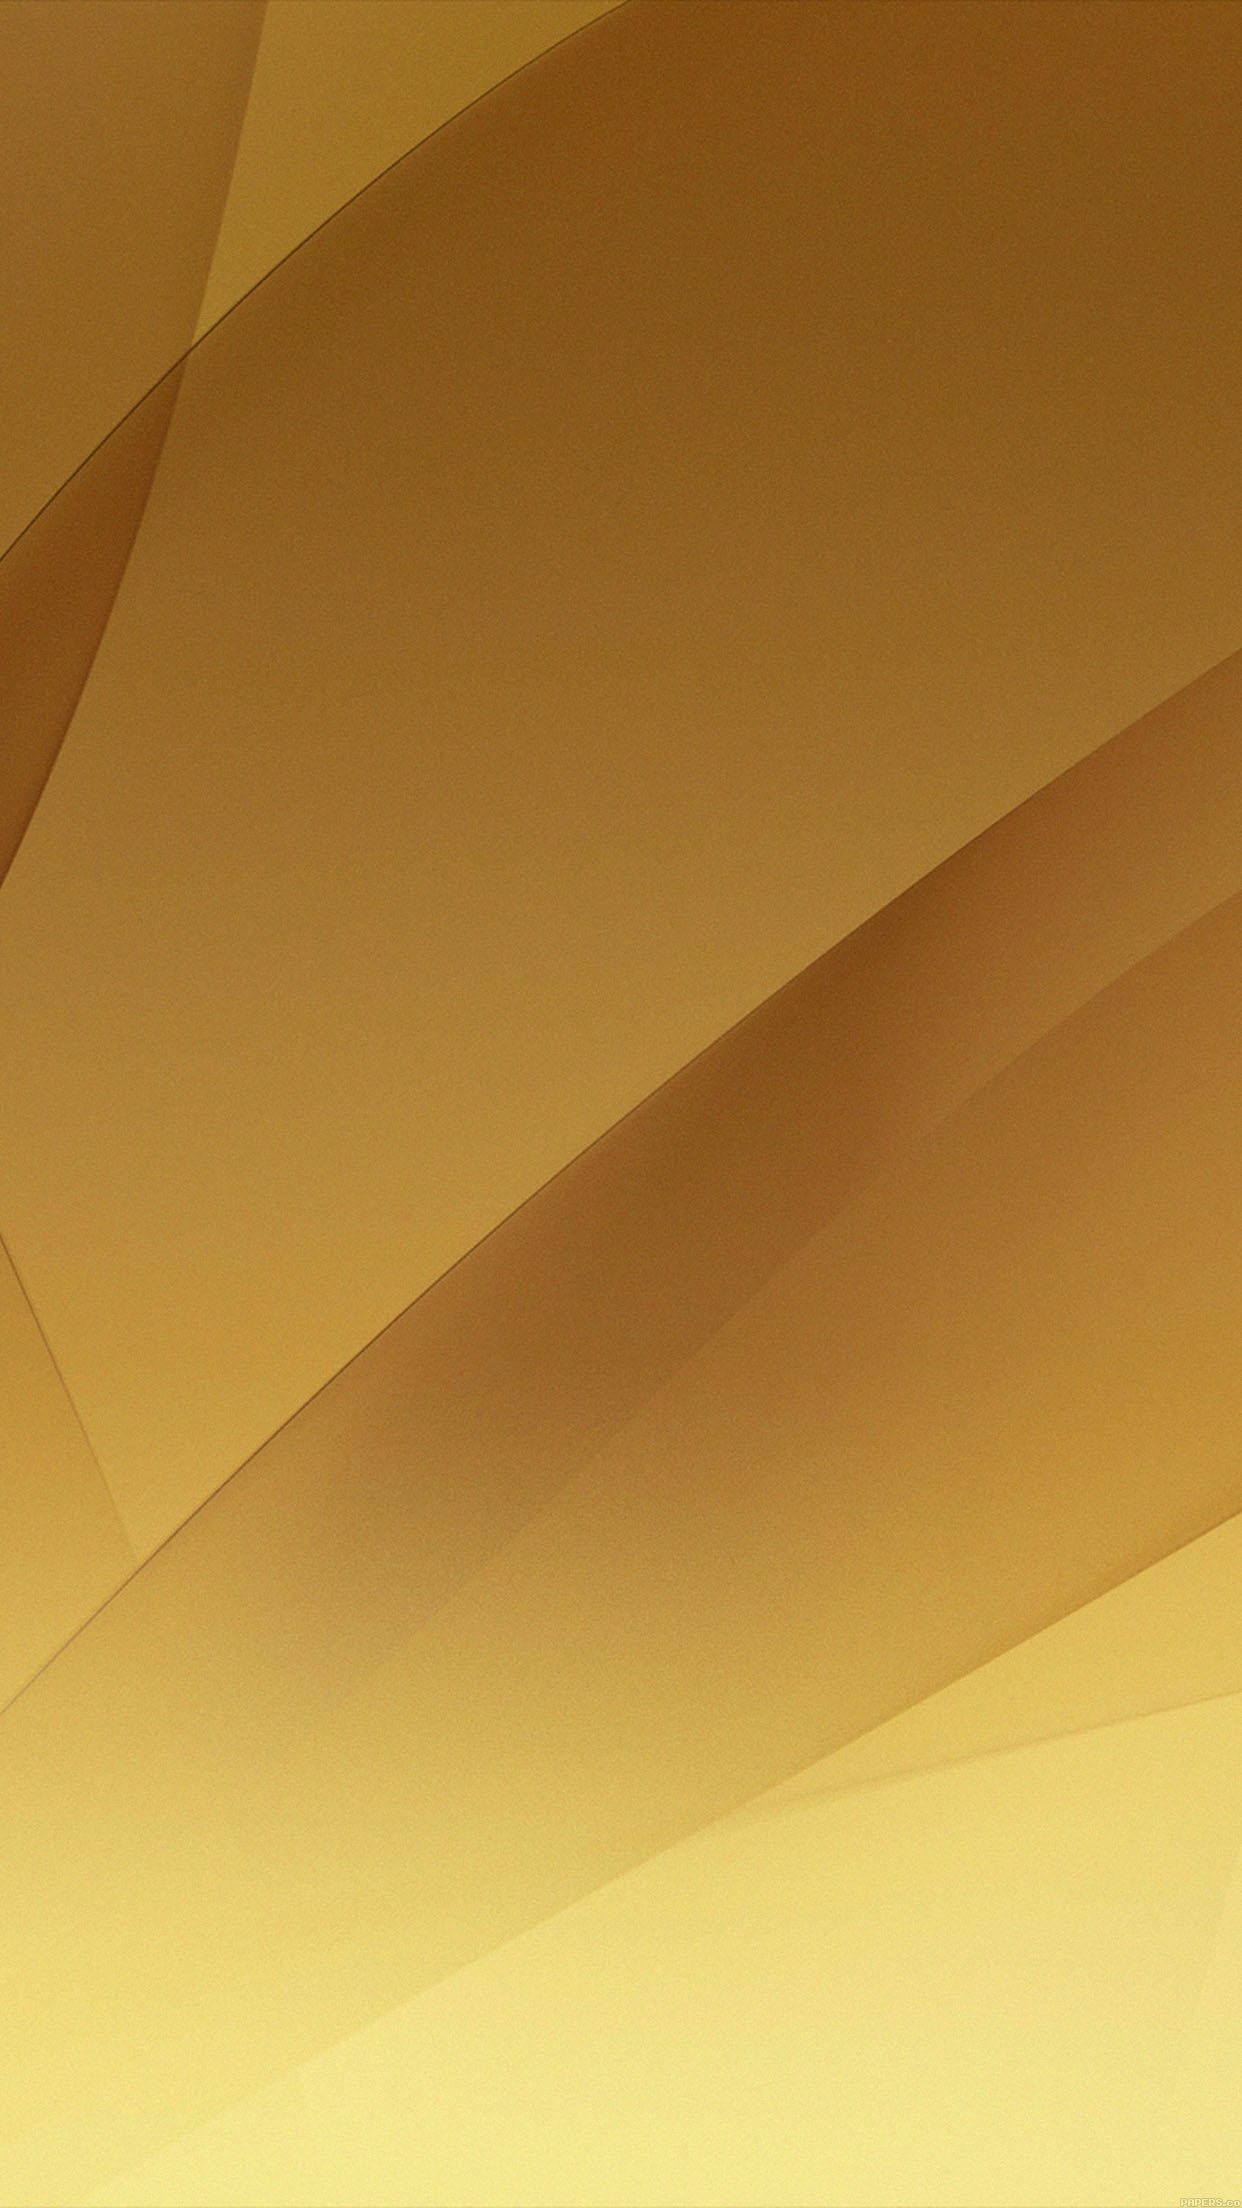 Iphone6papers Vb54 Wallpaper Aqua Gold Pattern